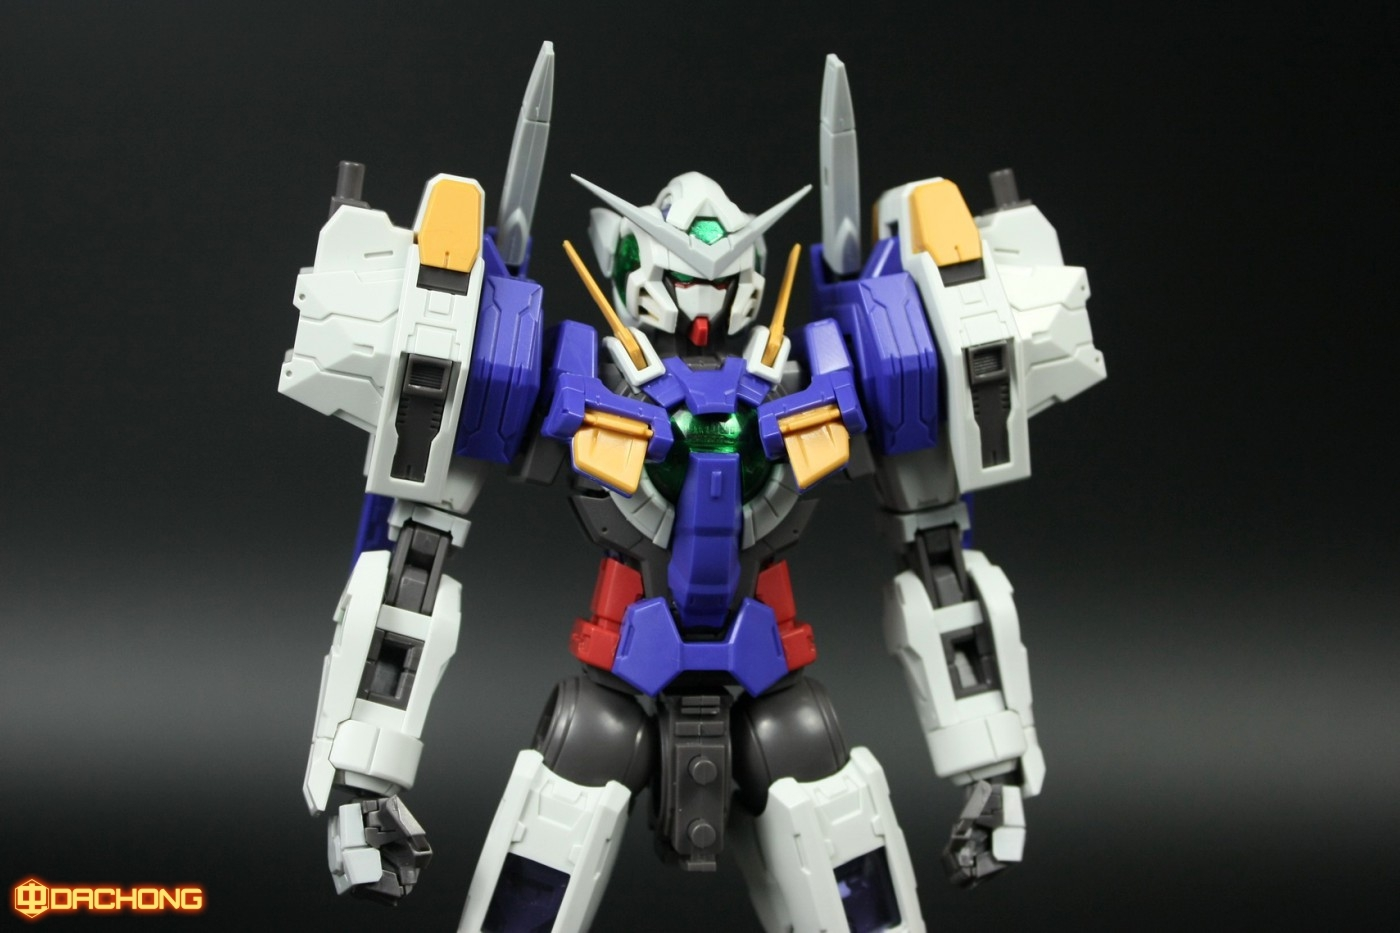 S254_MG_exia_HS_review_inask_050.jpg